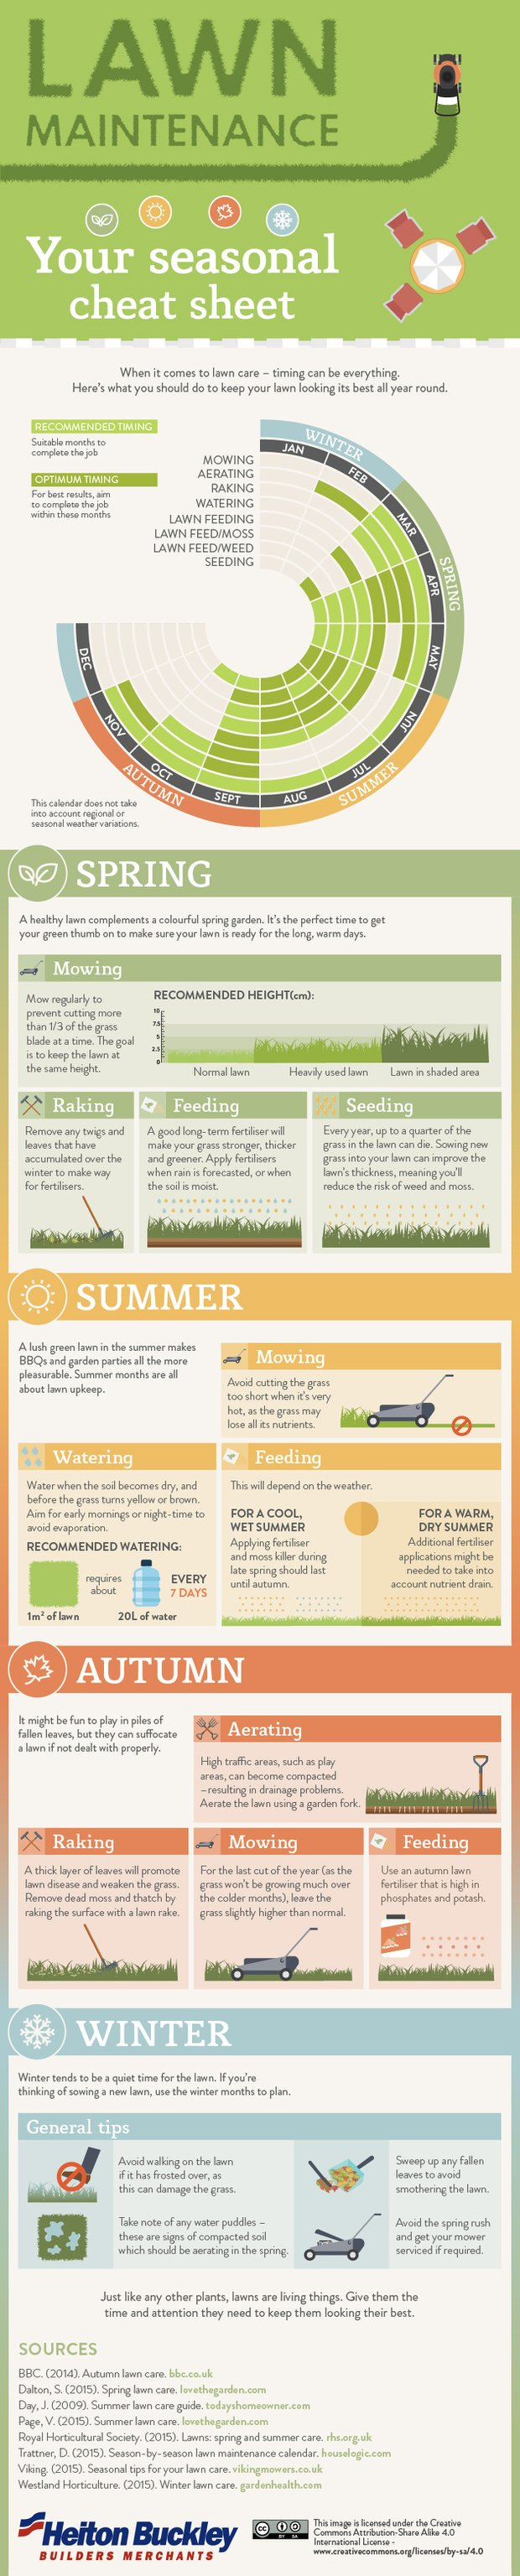 Garden cheat sheets-1